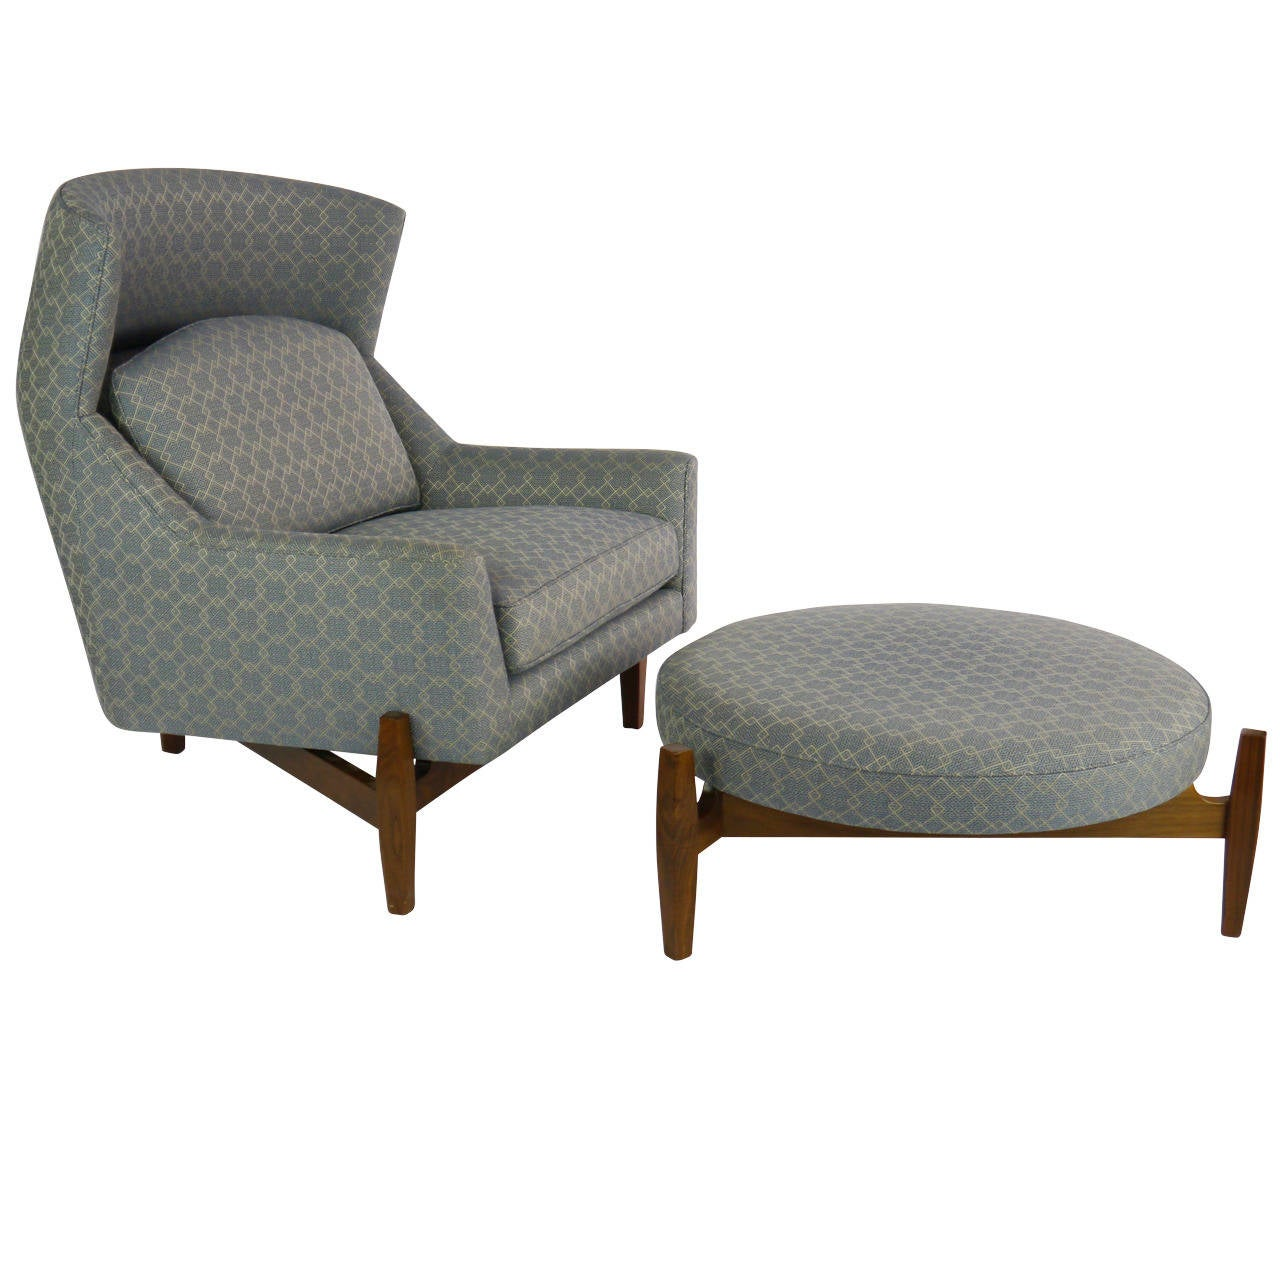 rare jens risom big chair with ottoman at stdibs - rare jens risom big chair with